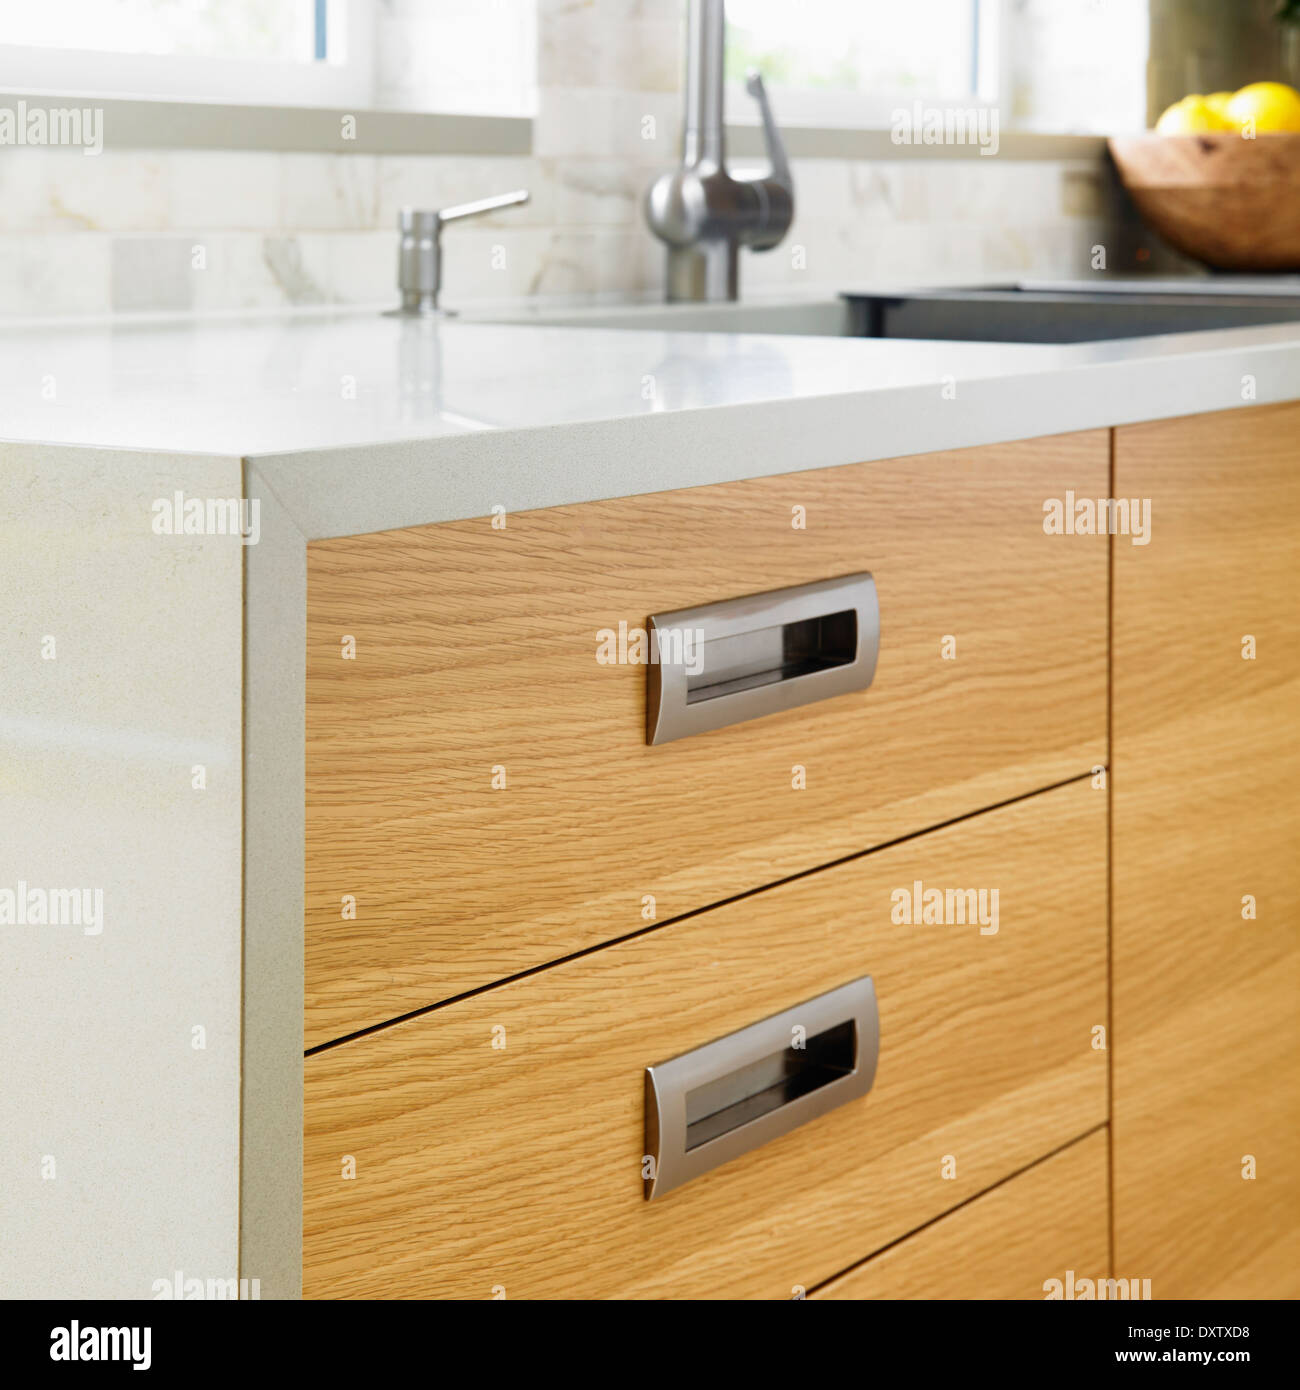 Detail Of Edge Grain Oak Cabinets With Modern Stainless Steel Pulls Stock Photo Alamy